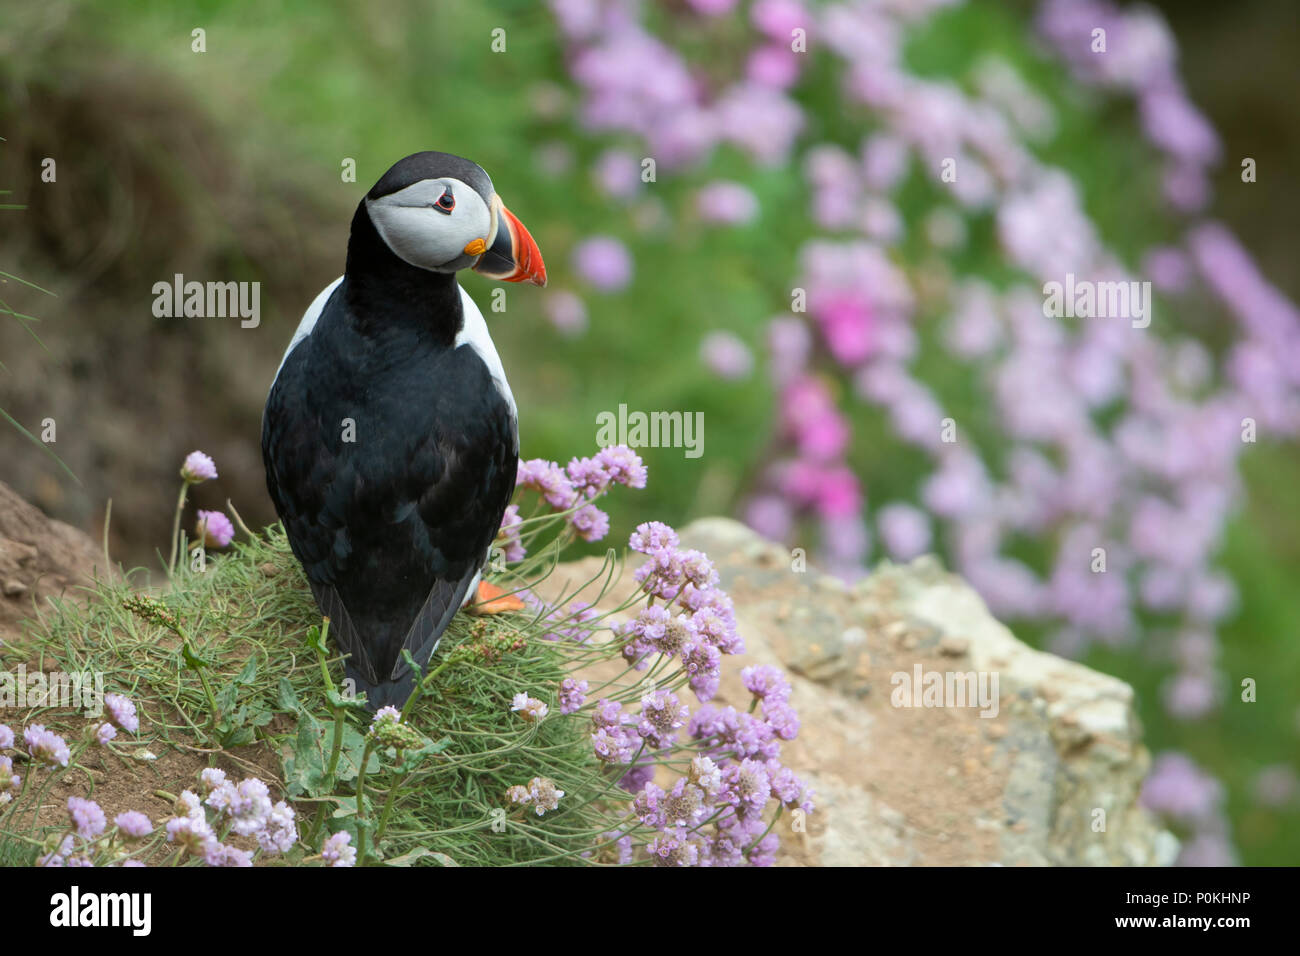 Puffin (Atlantic), Fratercula arctica, on a cliff, amongst thrift at Dunnet Head, Caithness,Highlands,Scotland,UK - Stock Image